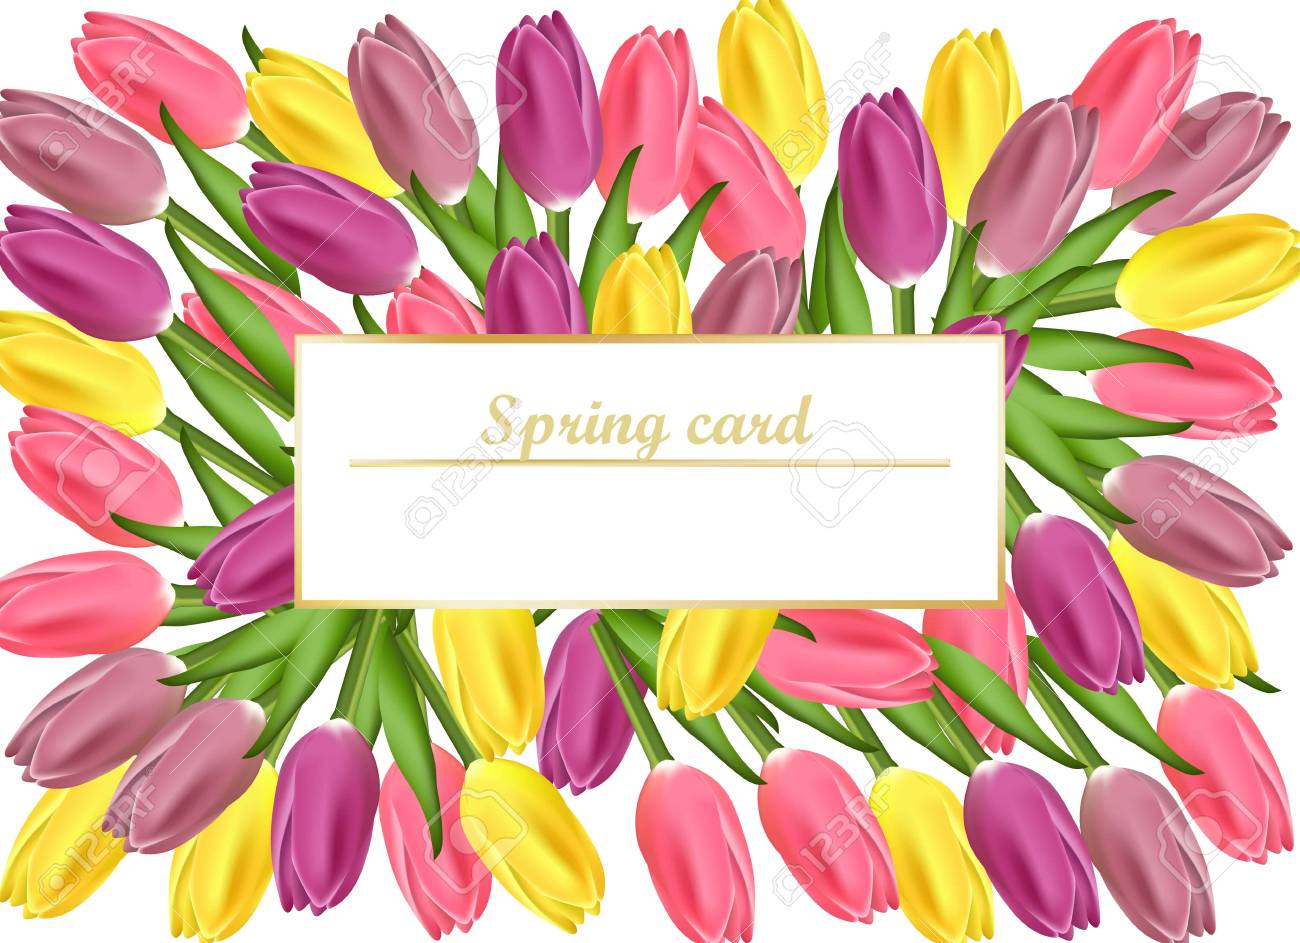 Tulips Card Realistic Flowers Illustrations For Women Day Wedding